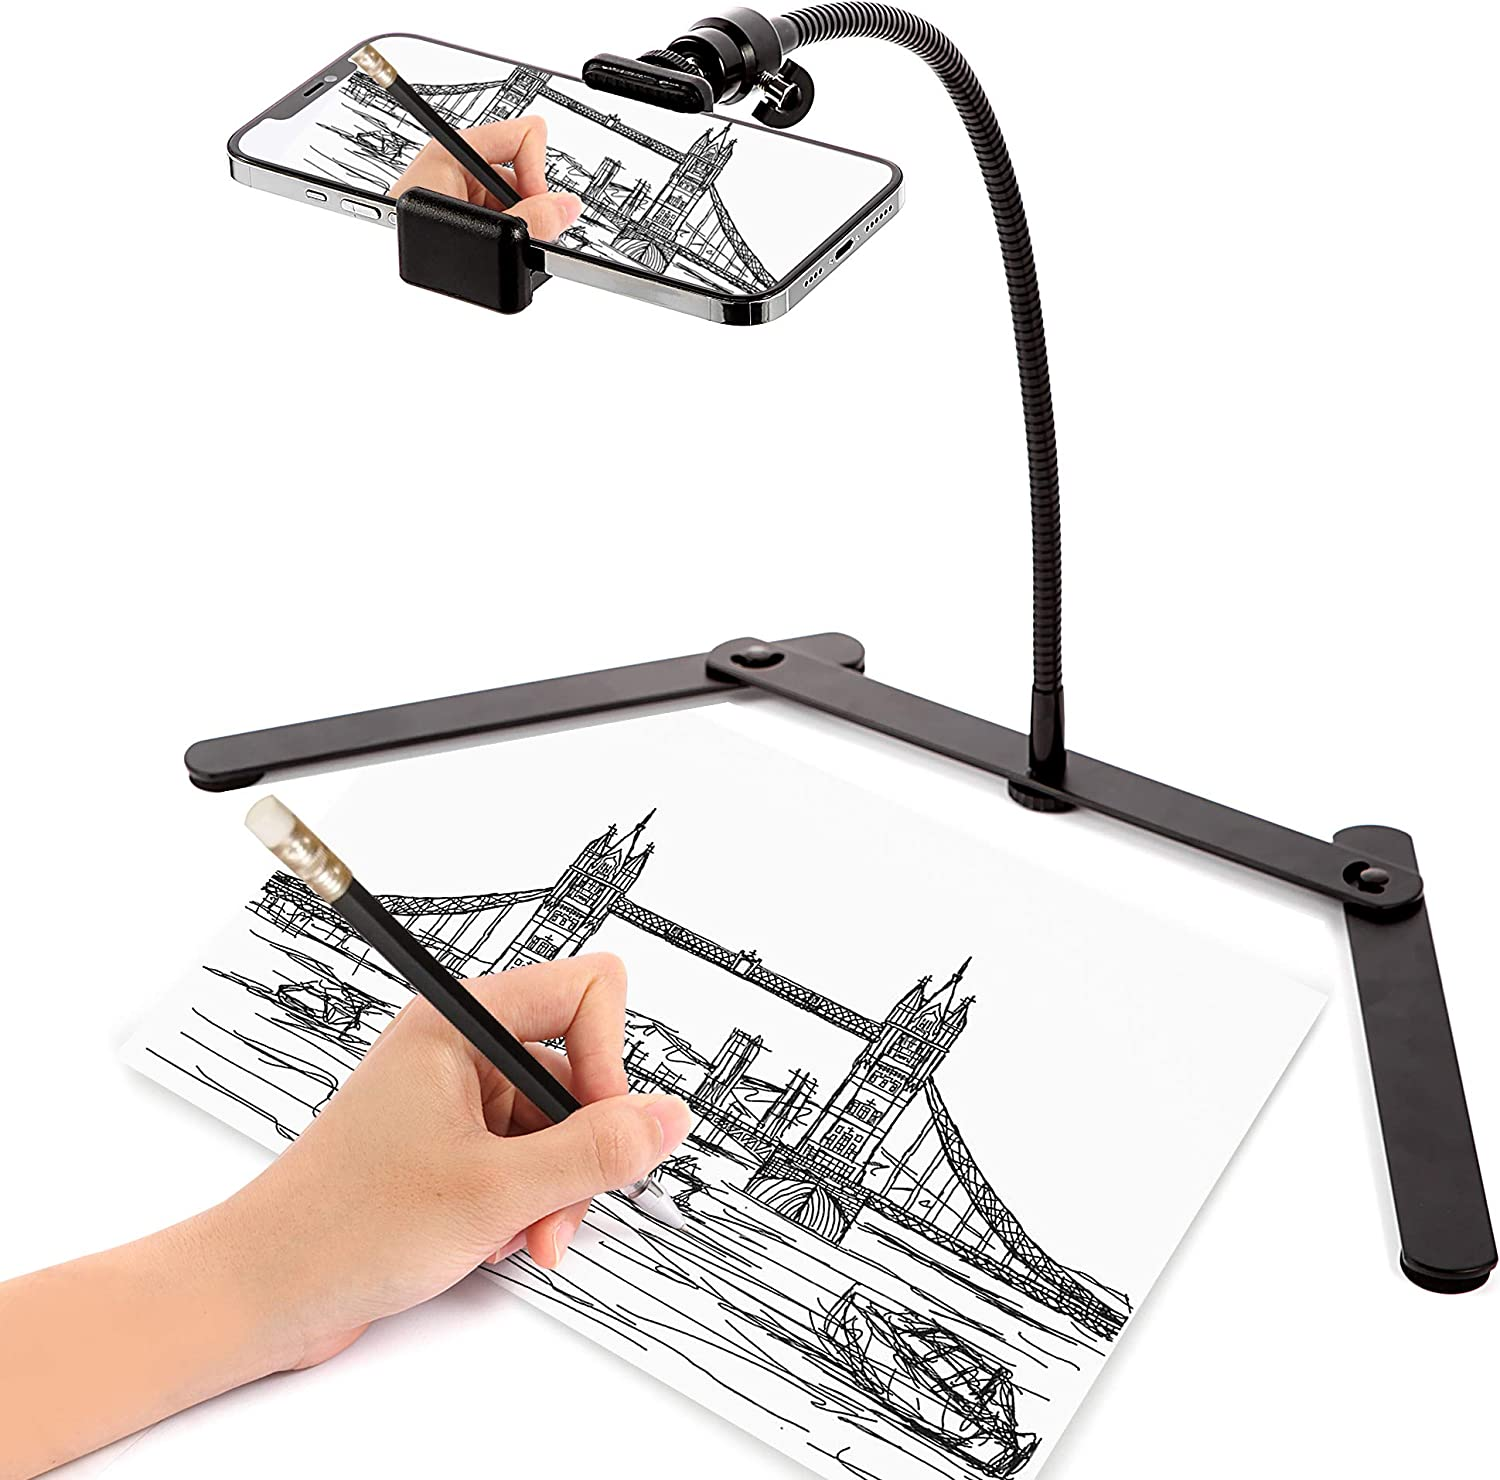 Ajustable Phone Tripod , Cellphone Holder, Overhead Phone Mount, Table Top Teaching Online Stand for Live Streaming and Online Video and Food Crafting Demo Drawing Sketching Recording Cook Recording